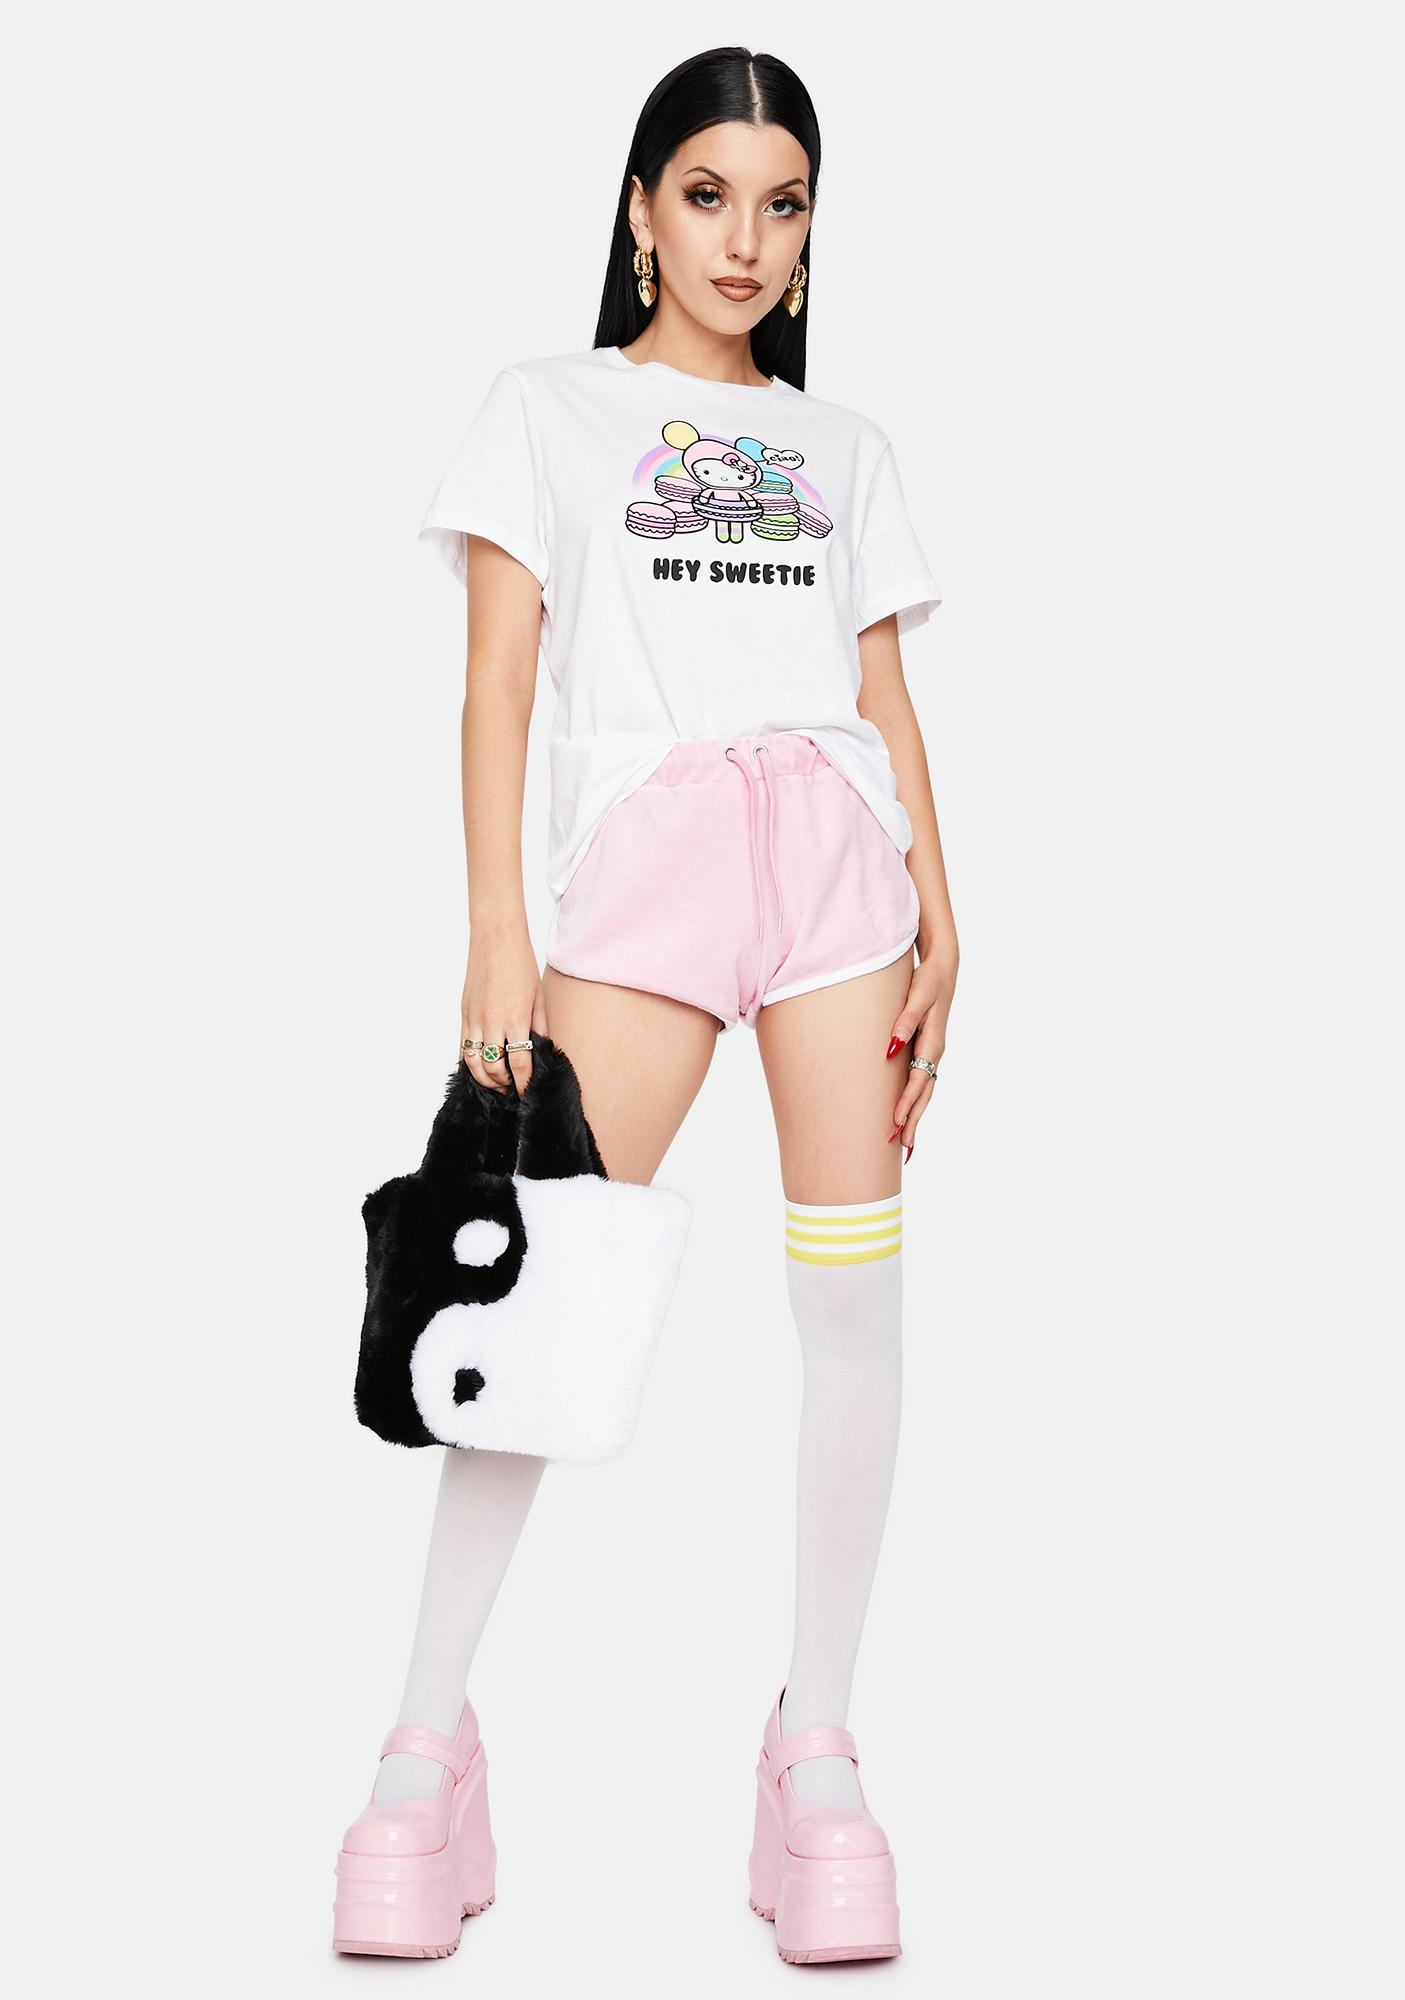 Tokidoki x Hello Kitty Hey Sweetie Graphic Tee